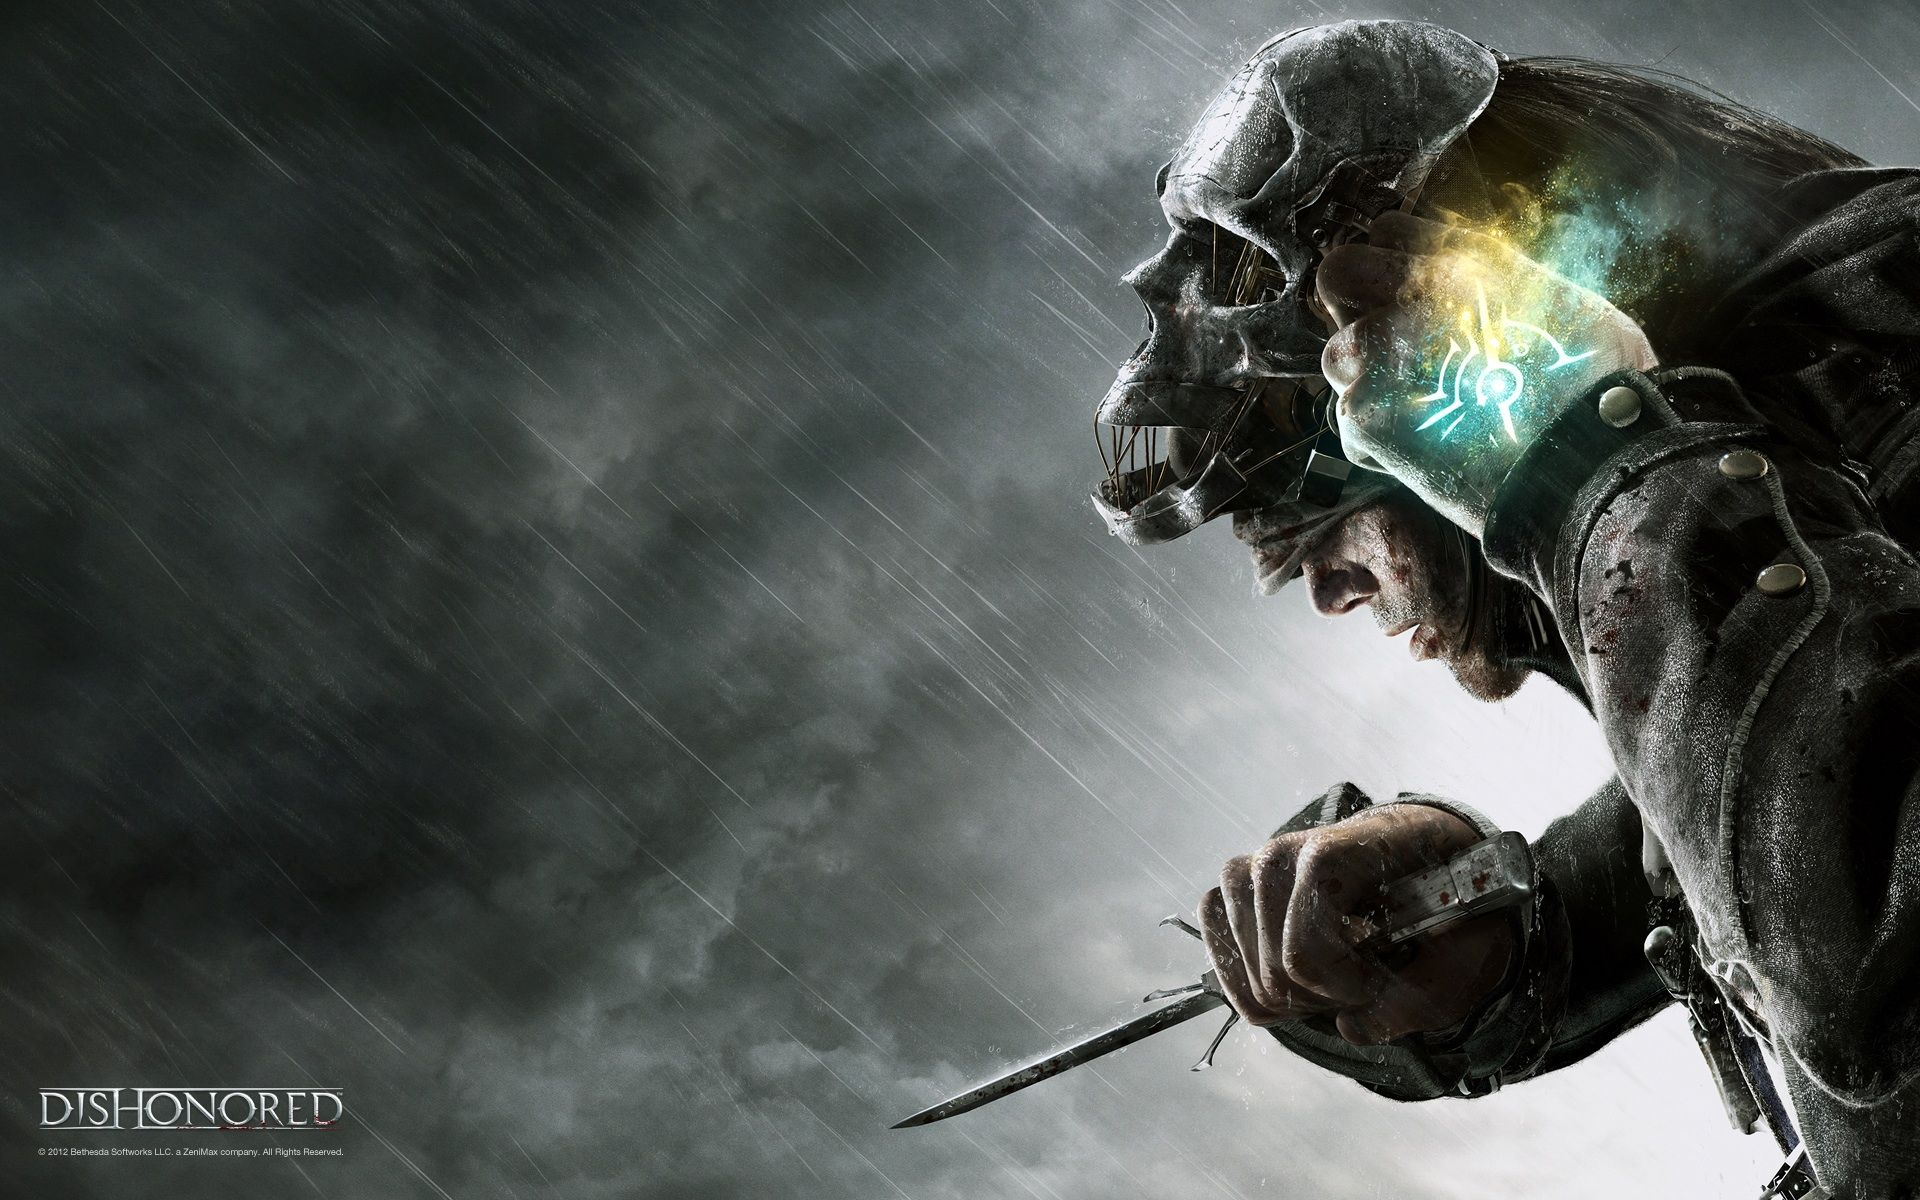 dishonored - video-games wallpaper | wallpapers | pinterest | video